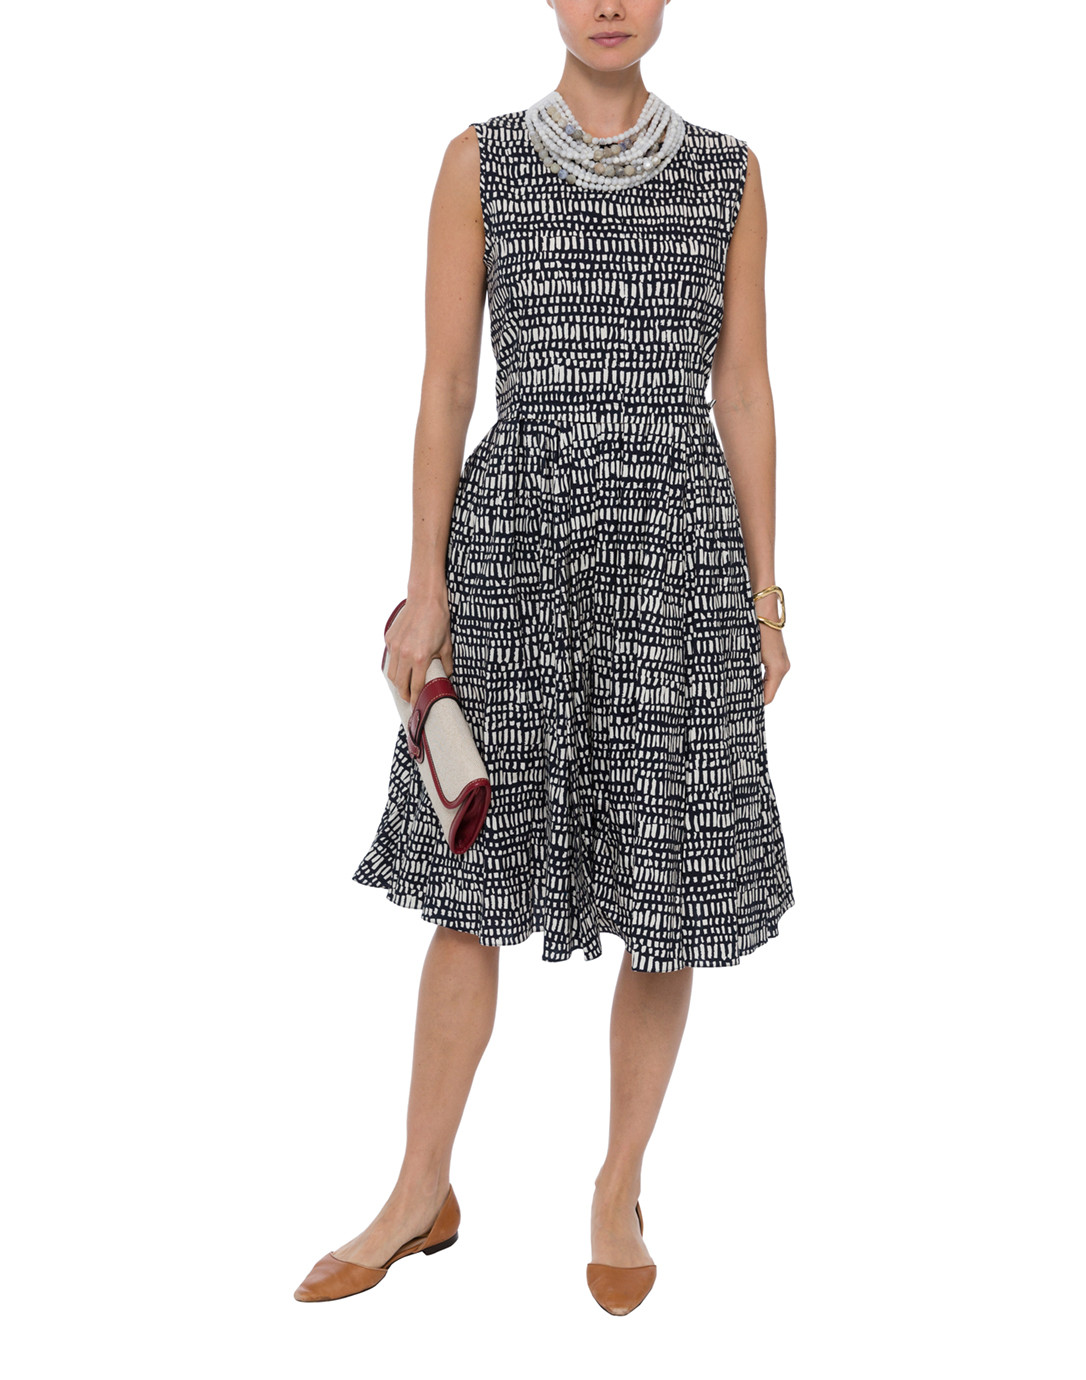 7cd9a6eef90f Spiga Navy and White Square Printed Stretch Cotton Dress